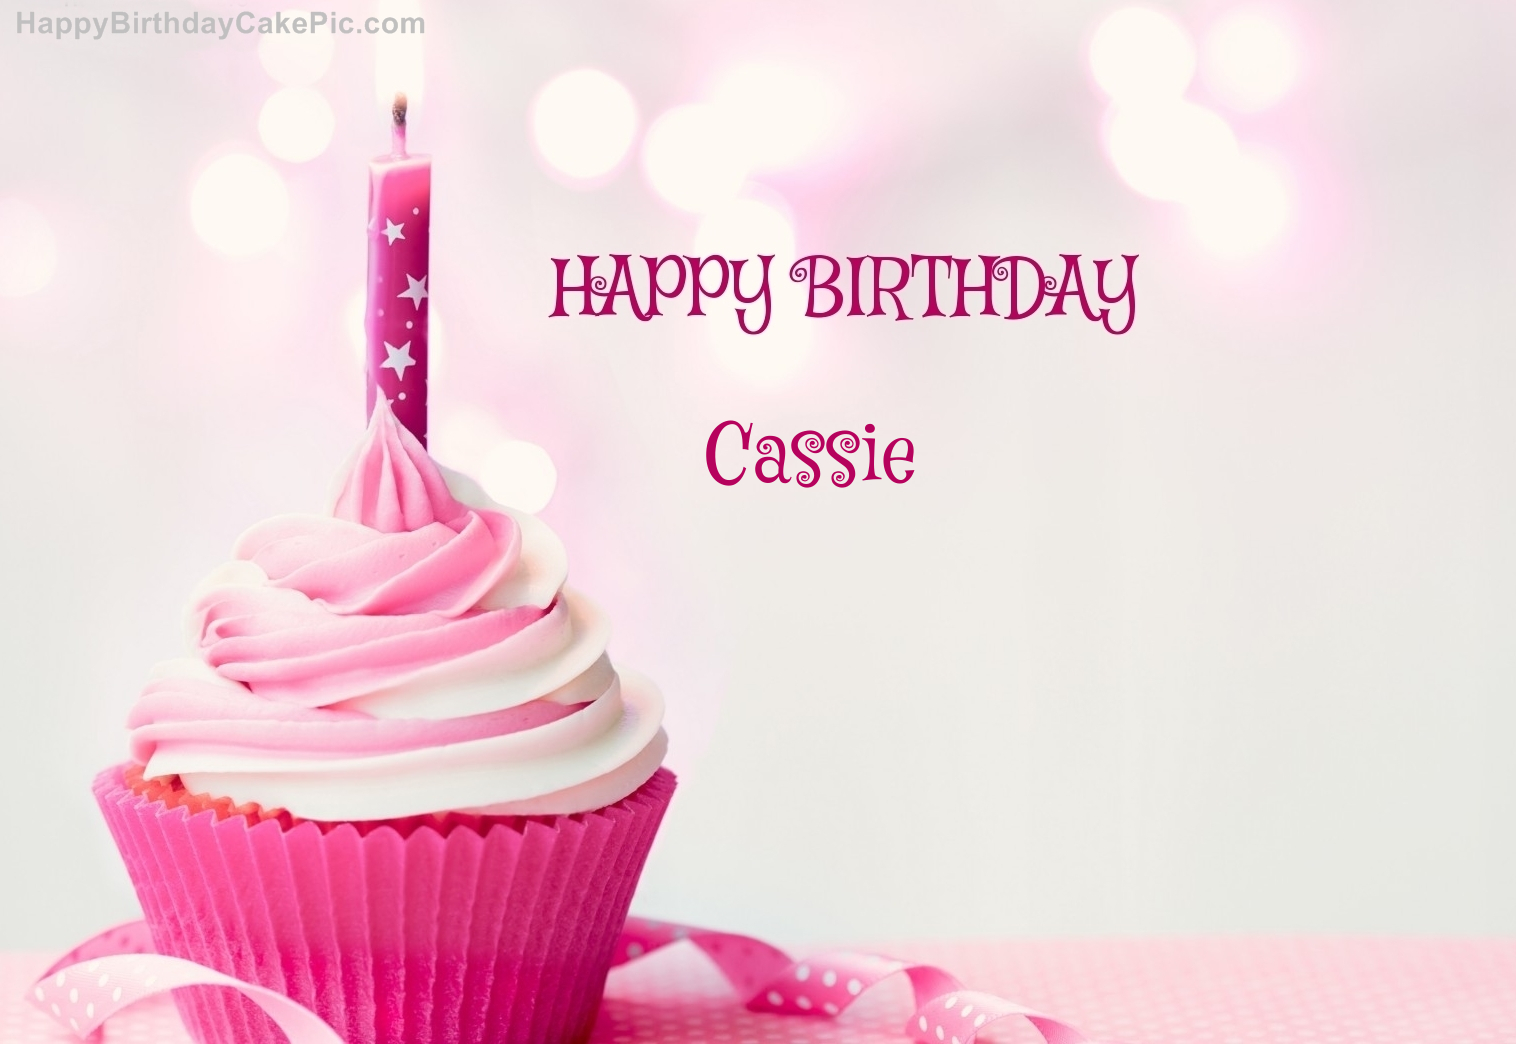 Candle Birthday Cake With Name